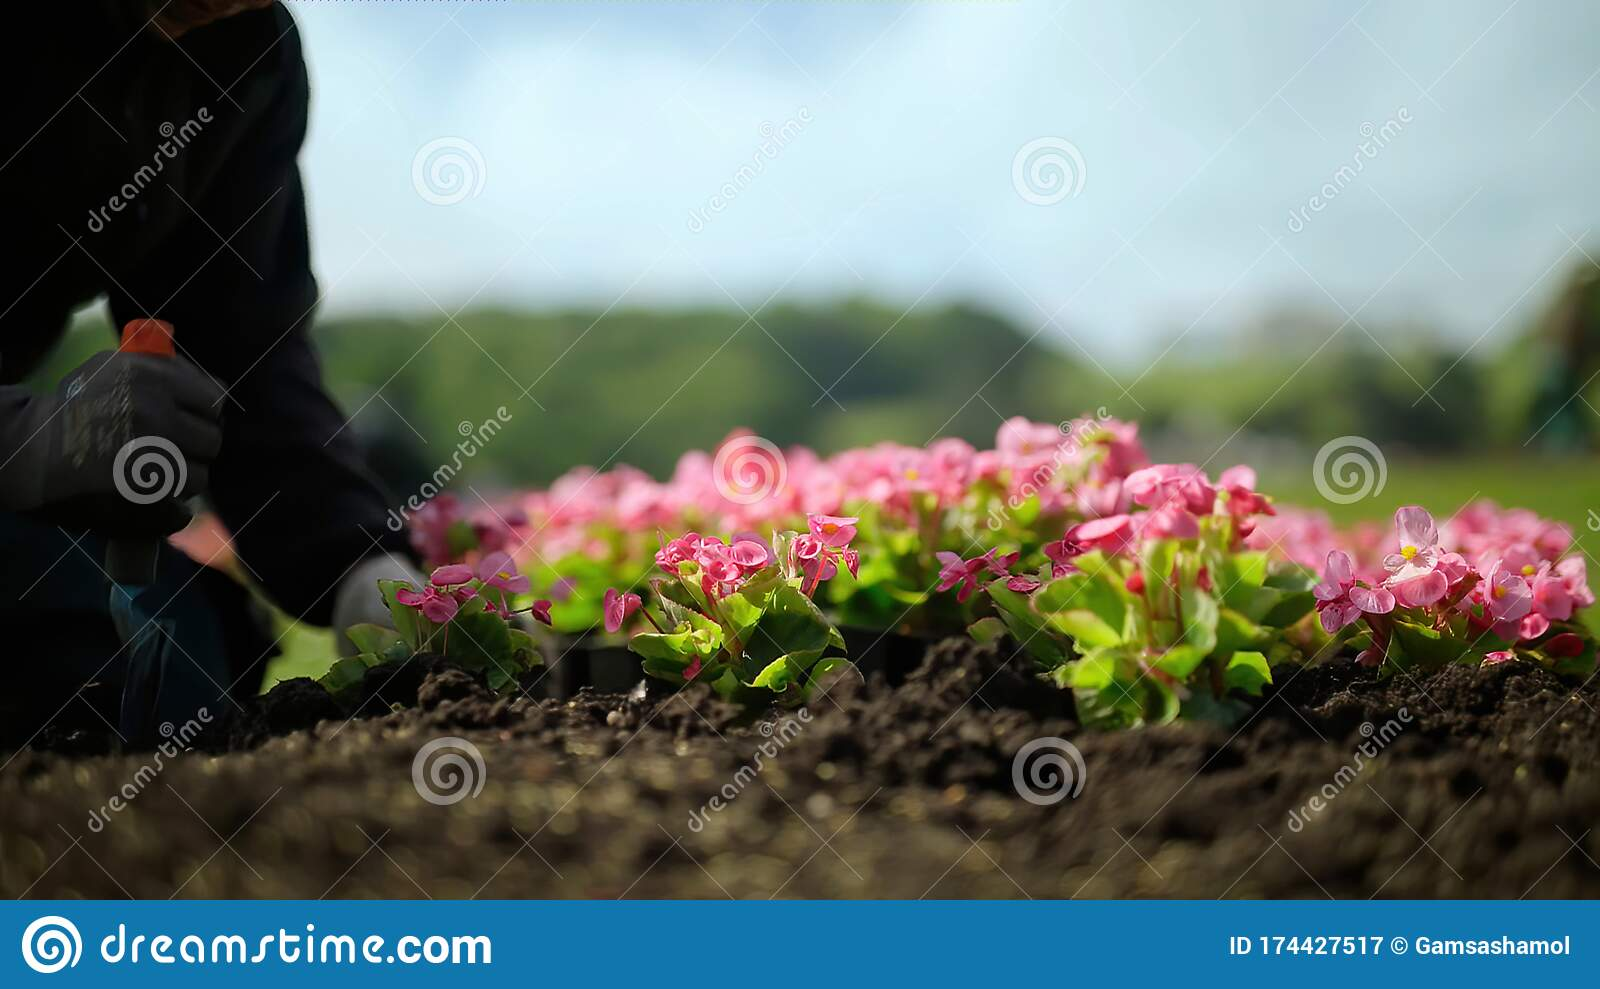 A Man Planting Flowers In A Flower Bed Stock Image Image Of Calm